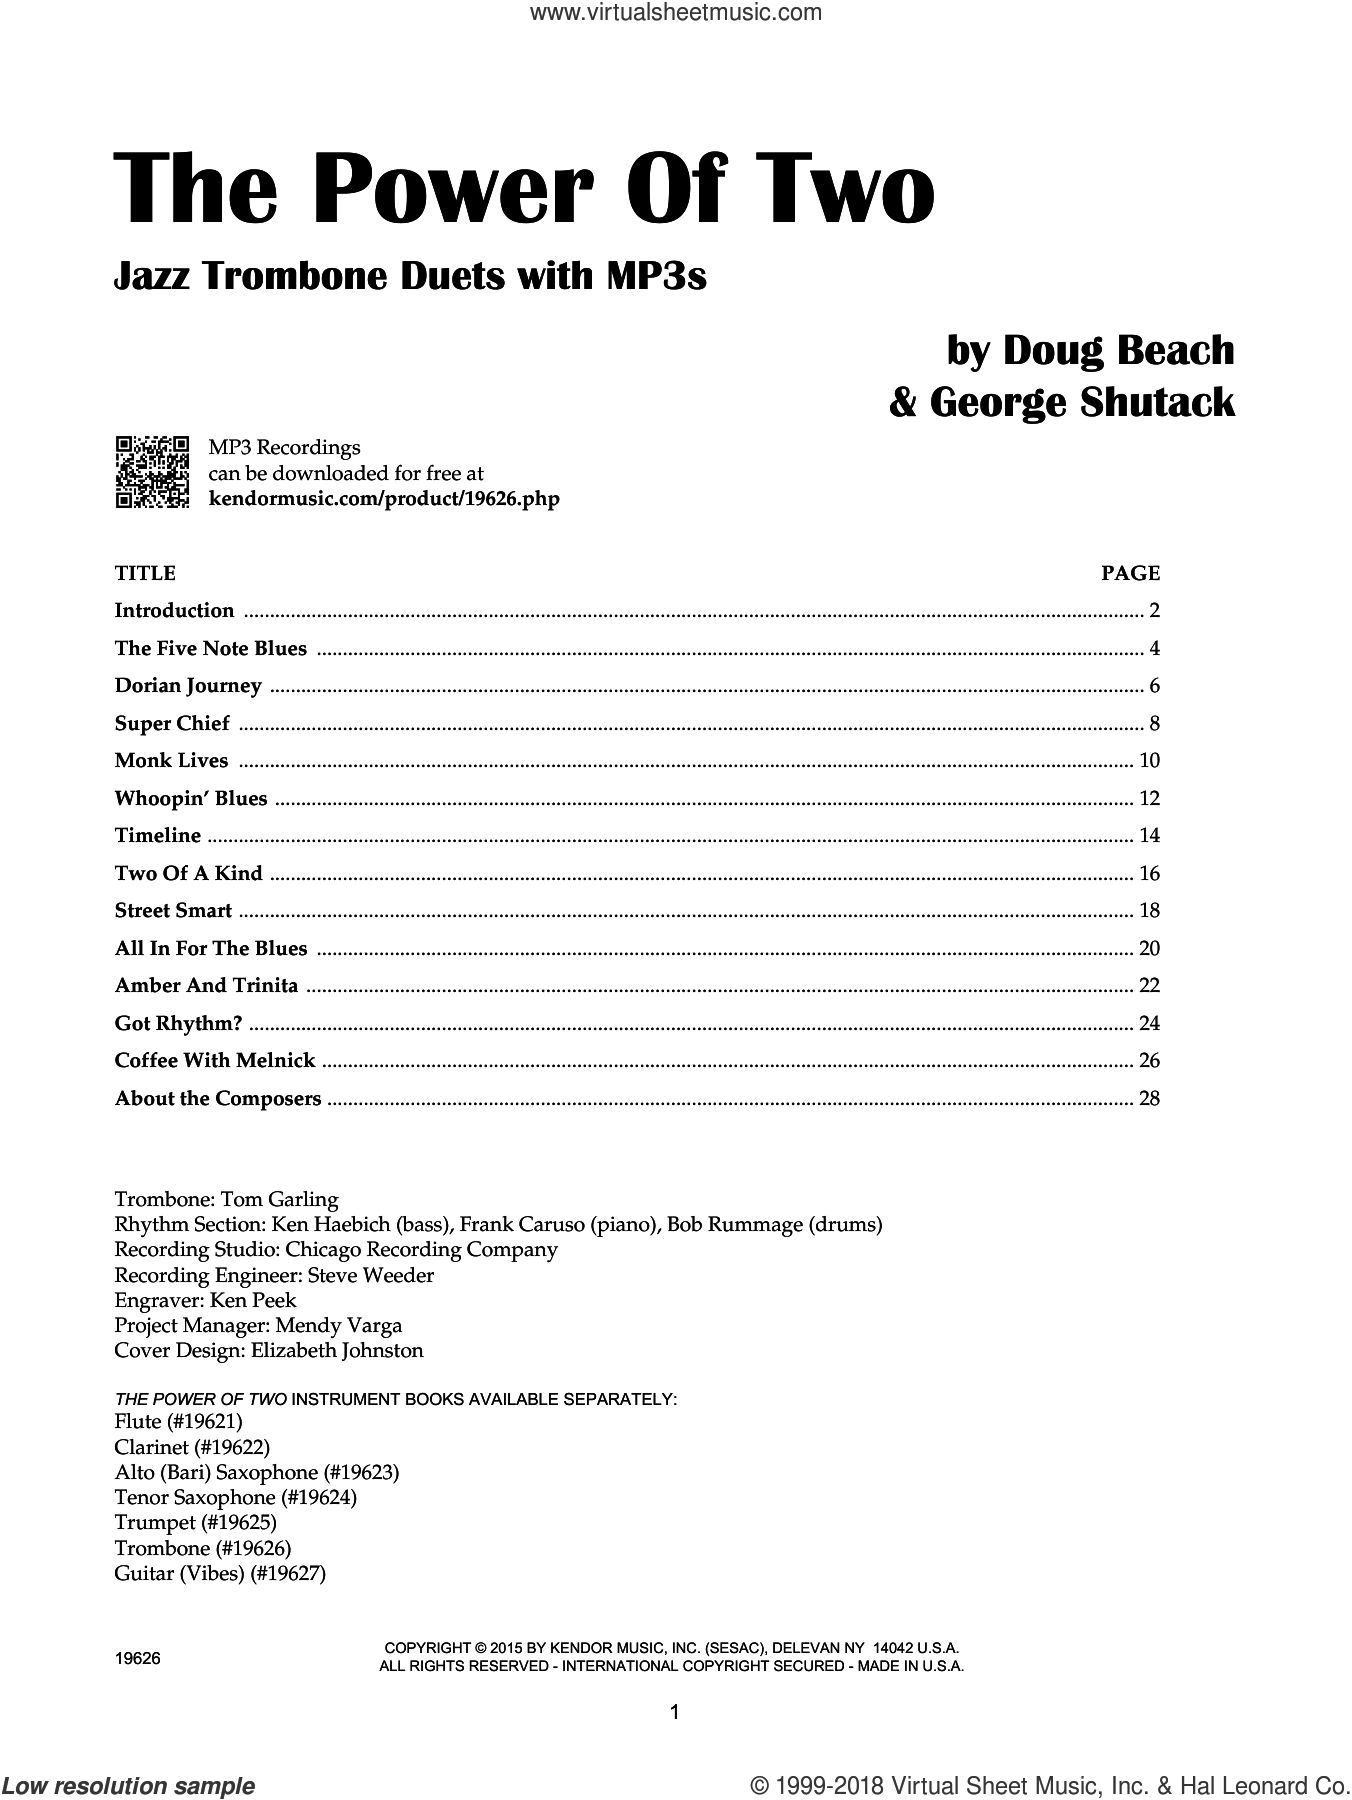 The Power Of Two - Trombone sheet music for two trombones by Doug Beach and George Shutack, intermediate duet